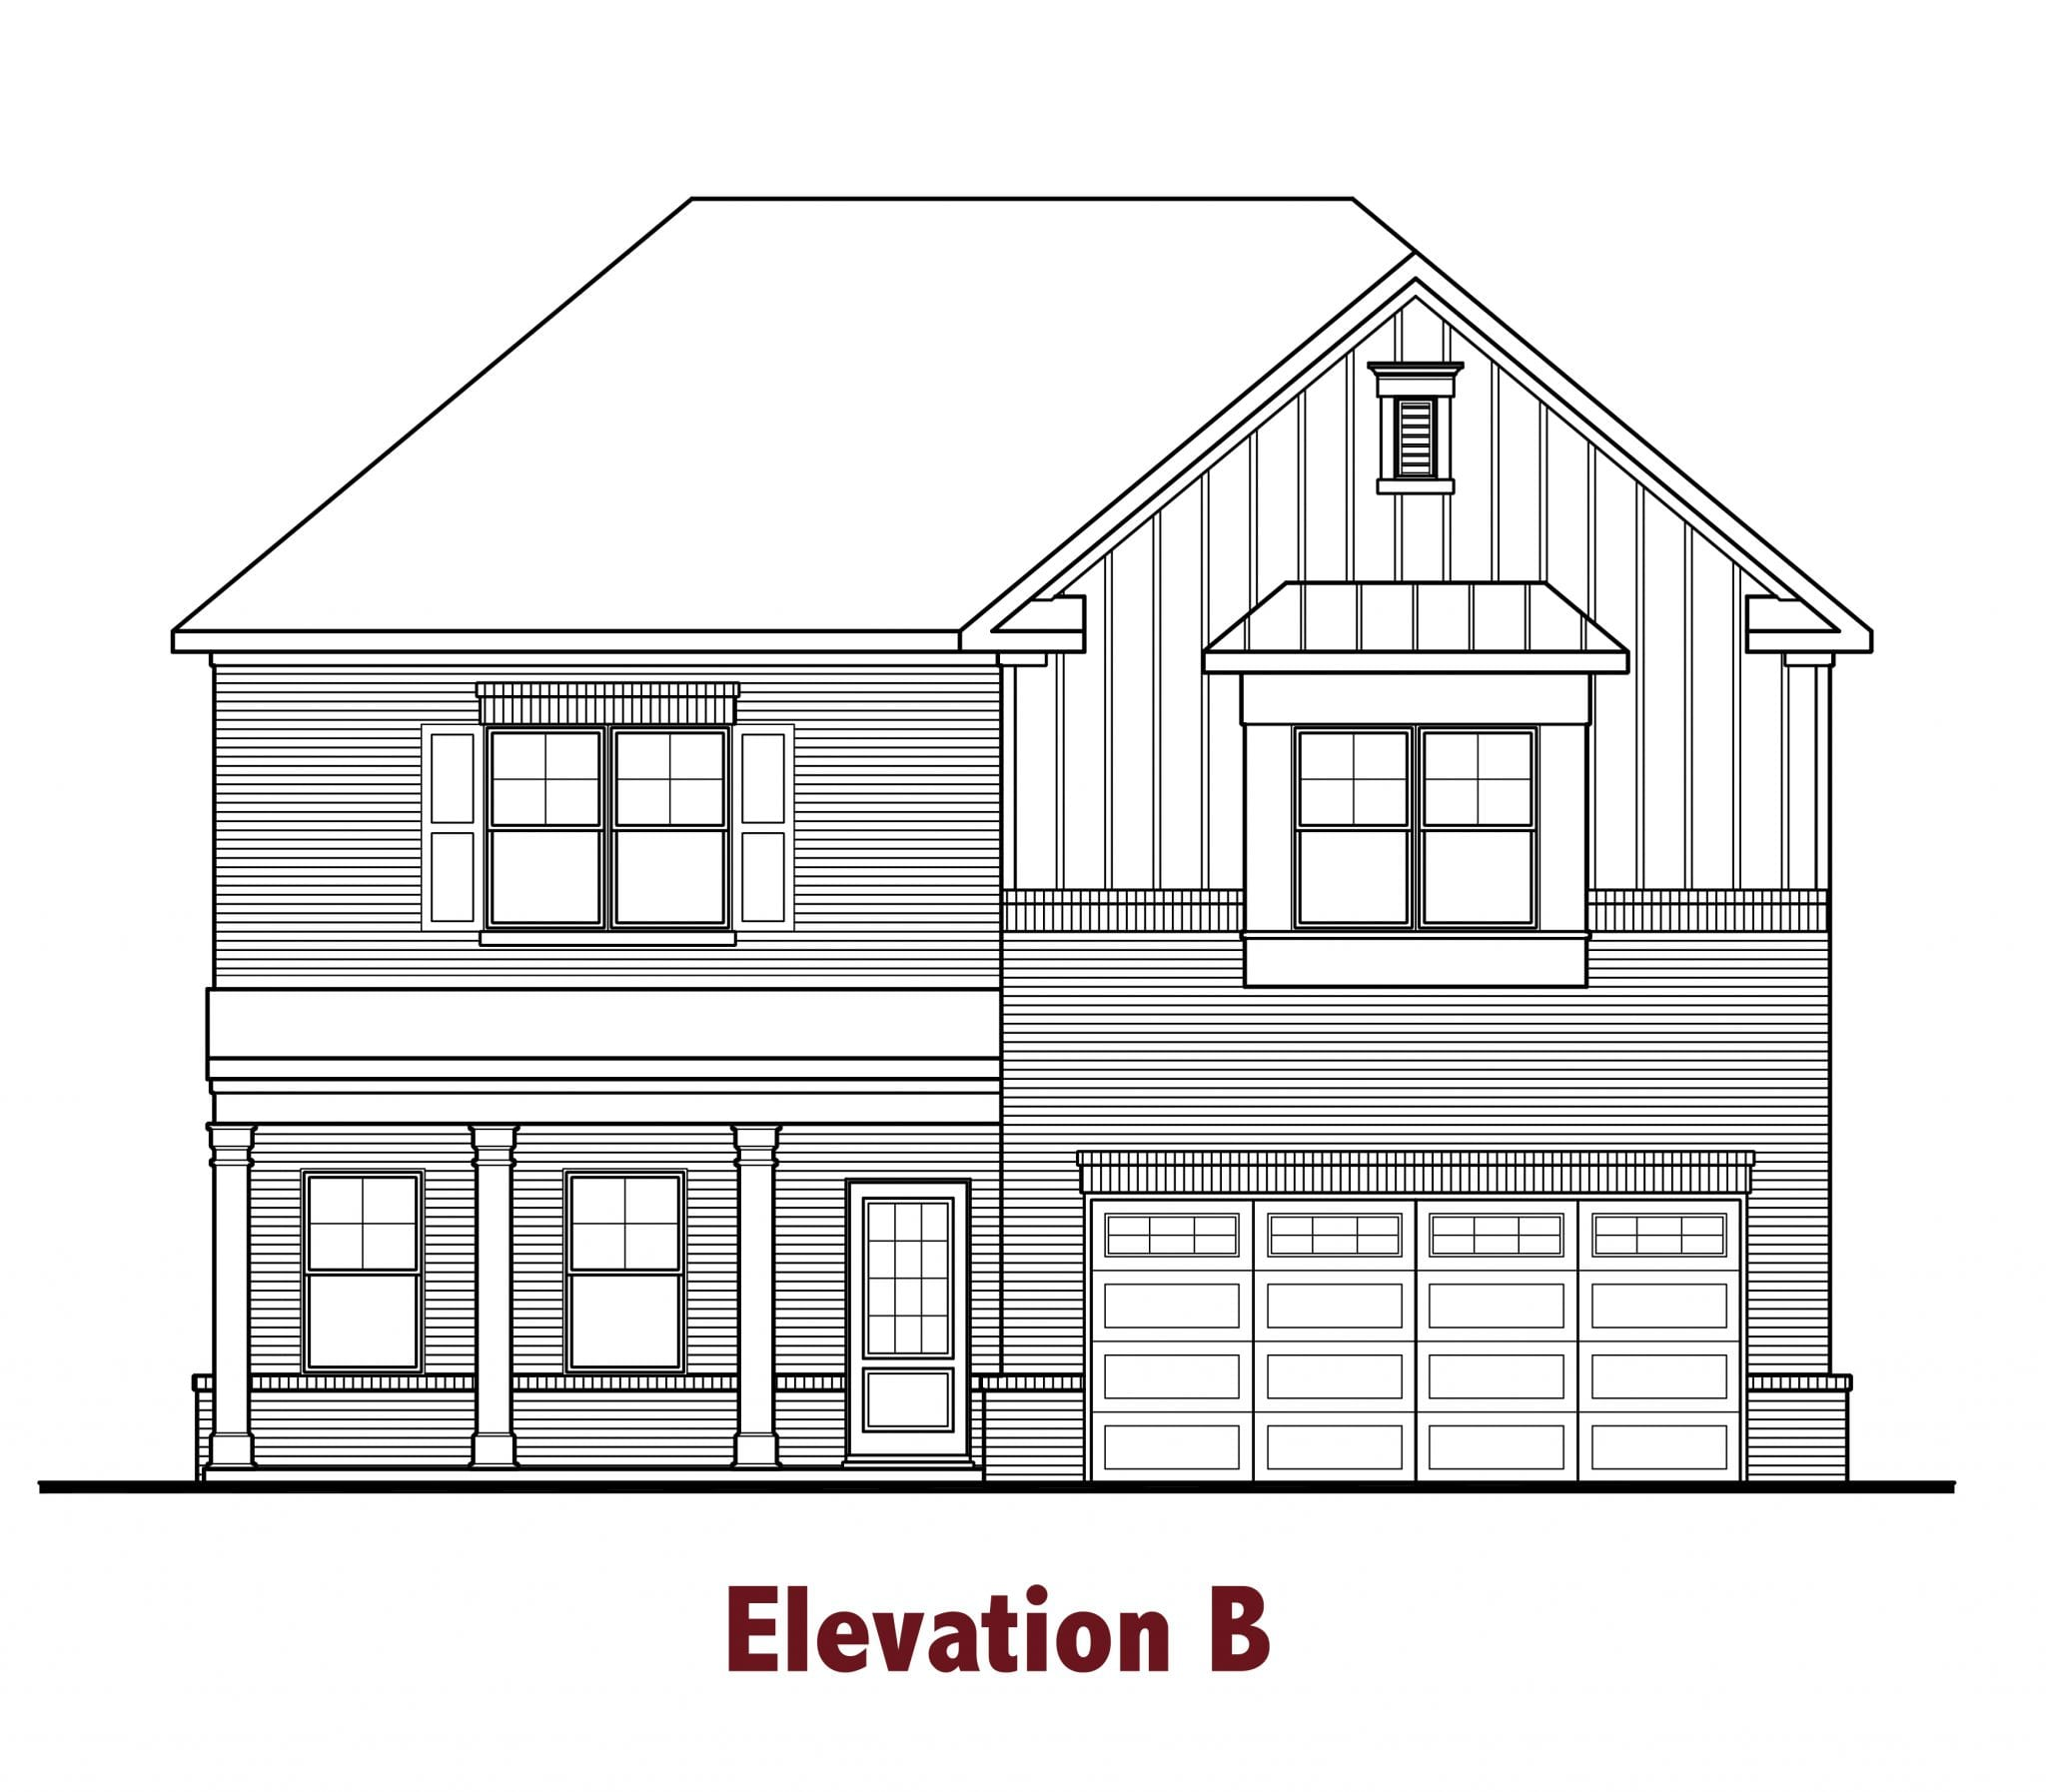 Callington elevations Image